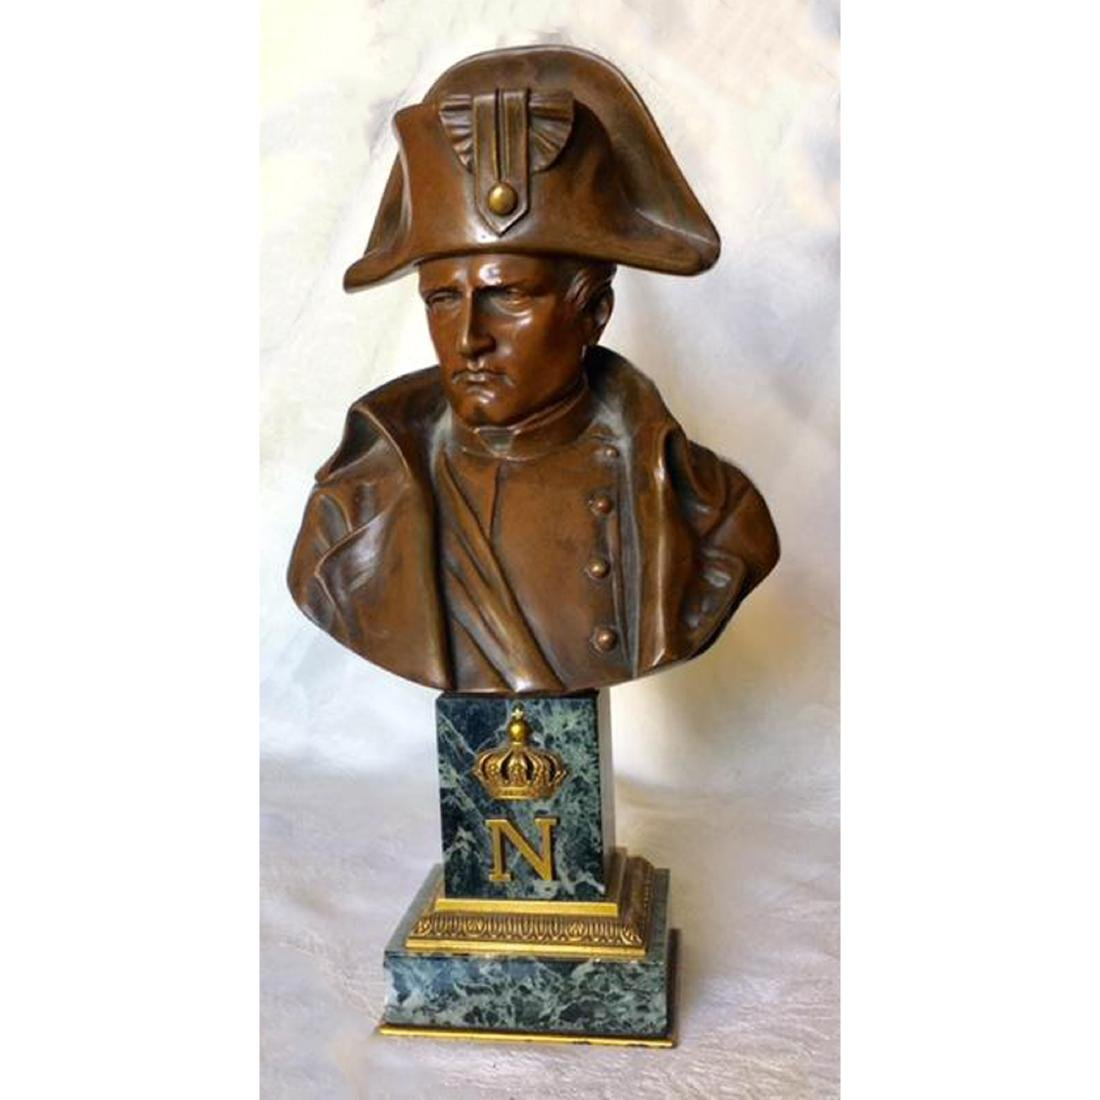 EMILE PINEDO (FRENCH, 1840-1916) BRONZE NAPOLEON